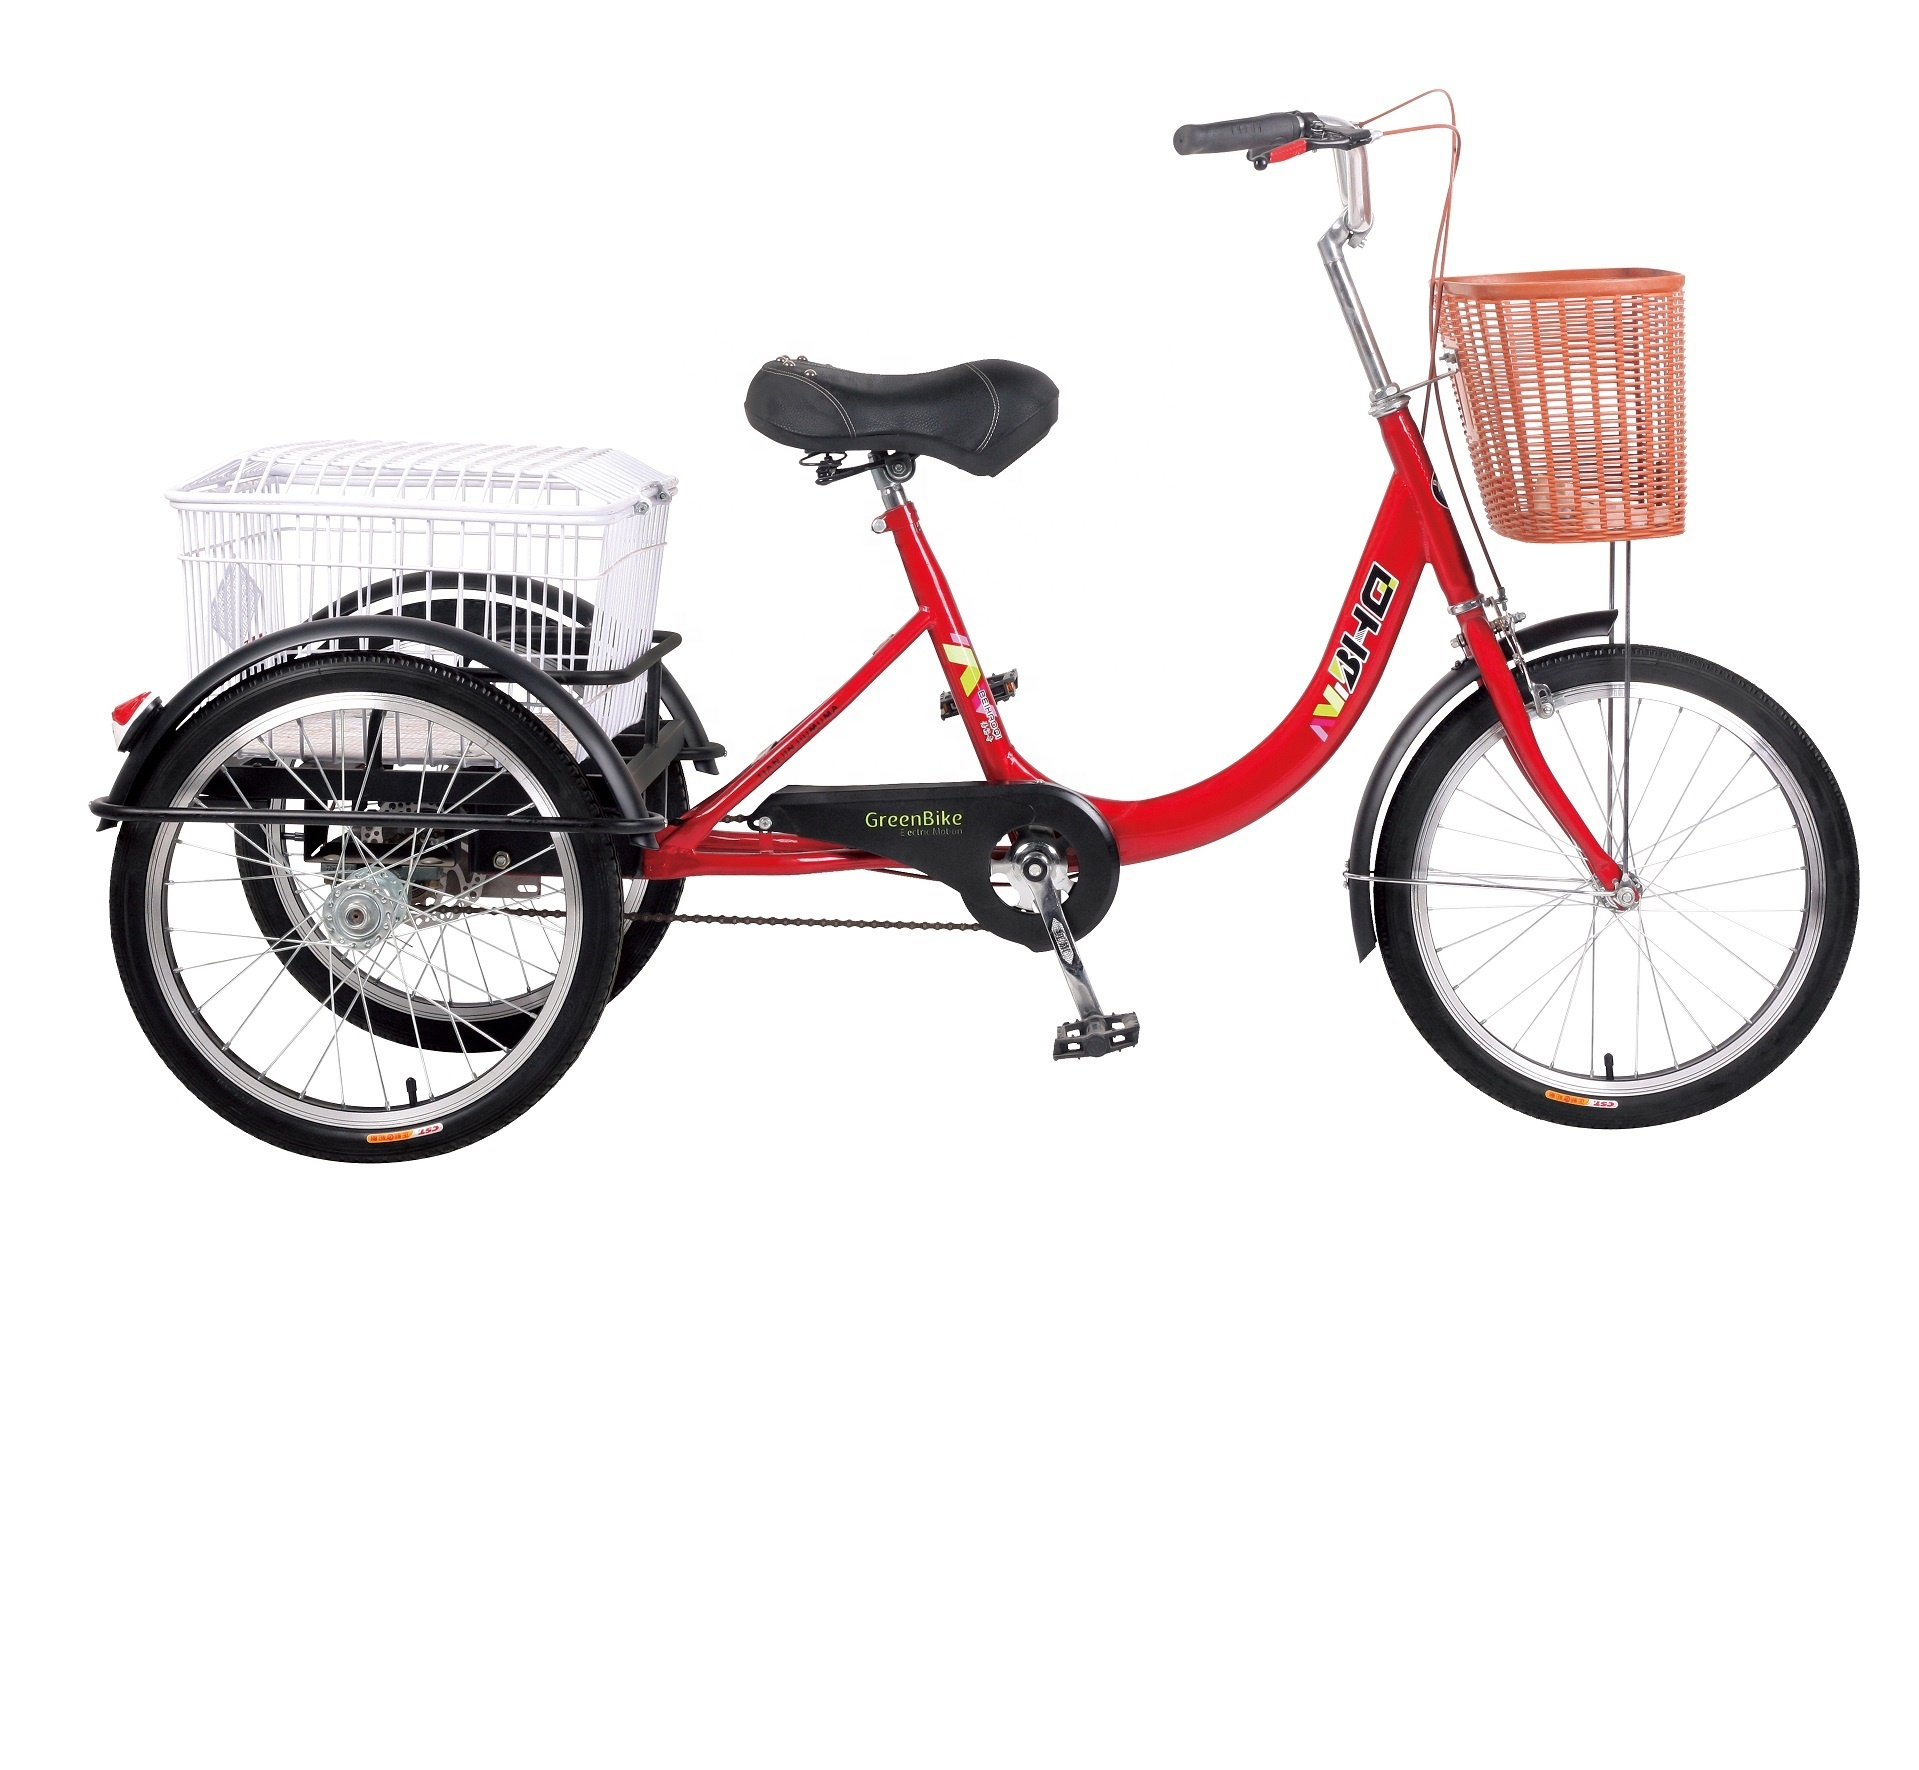 highly quality man power trike pedal cargo tricycle manual 3 wheels <strong>cycle</strong> for adults